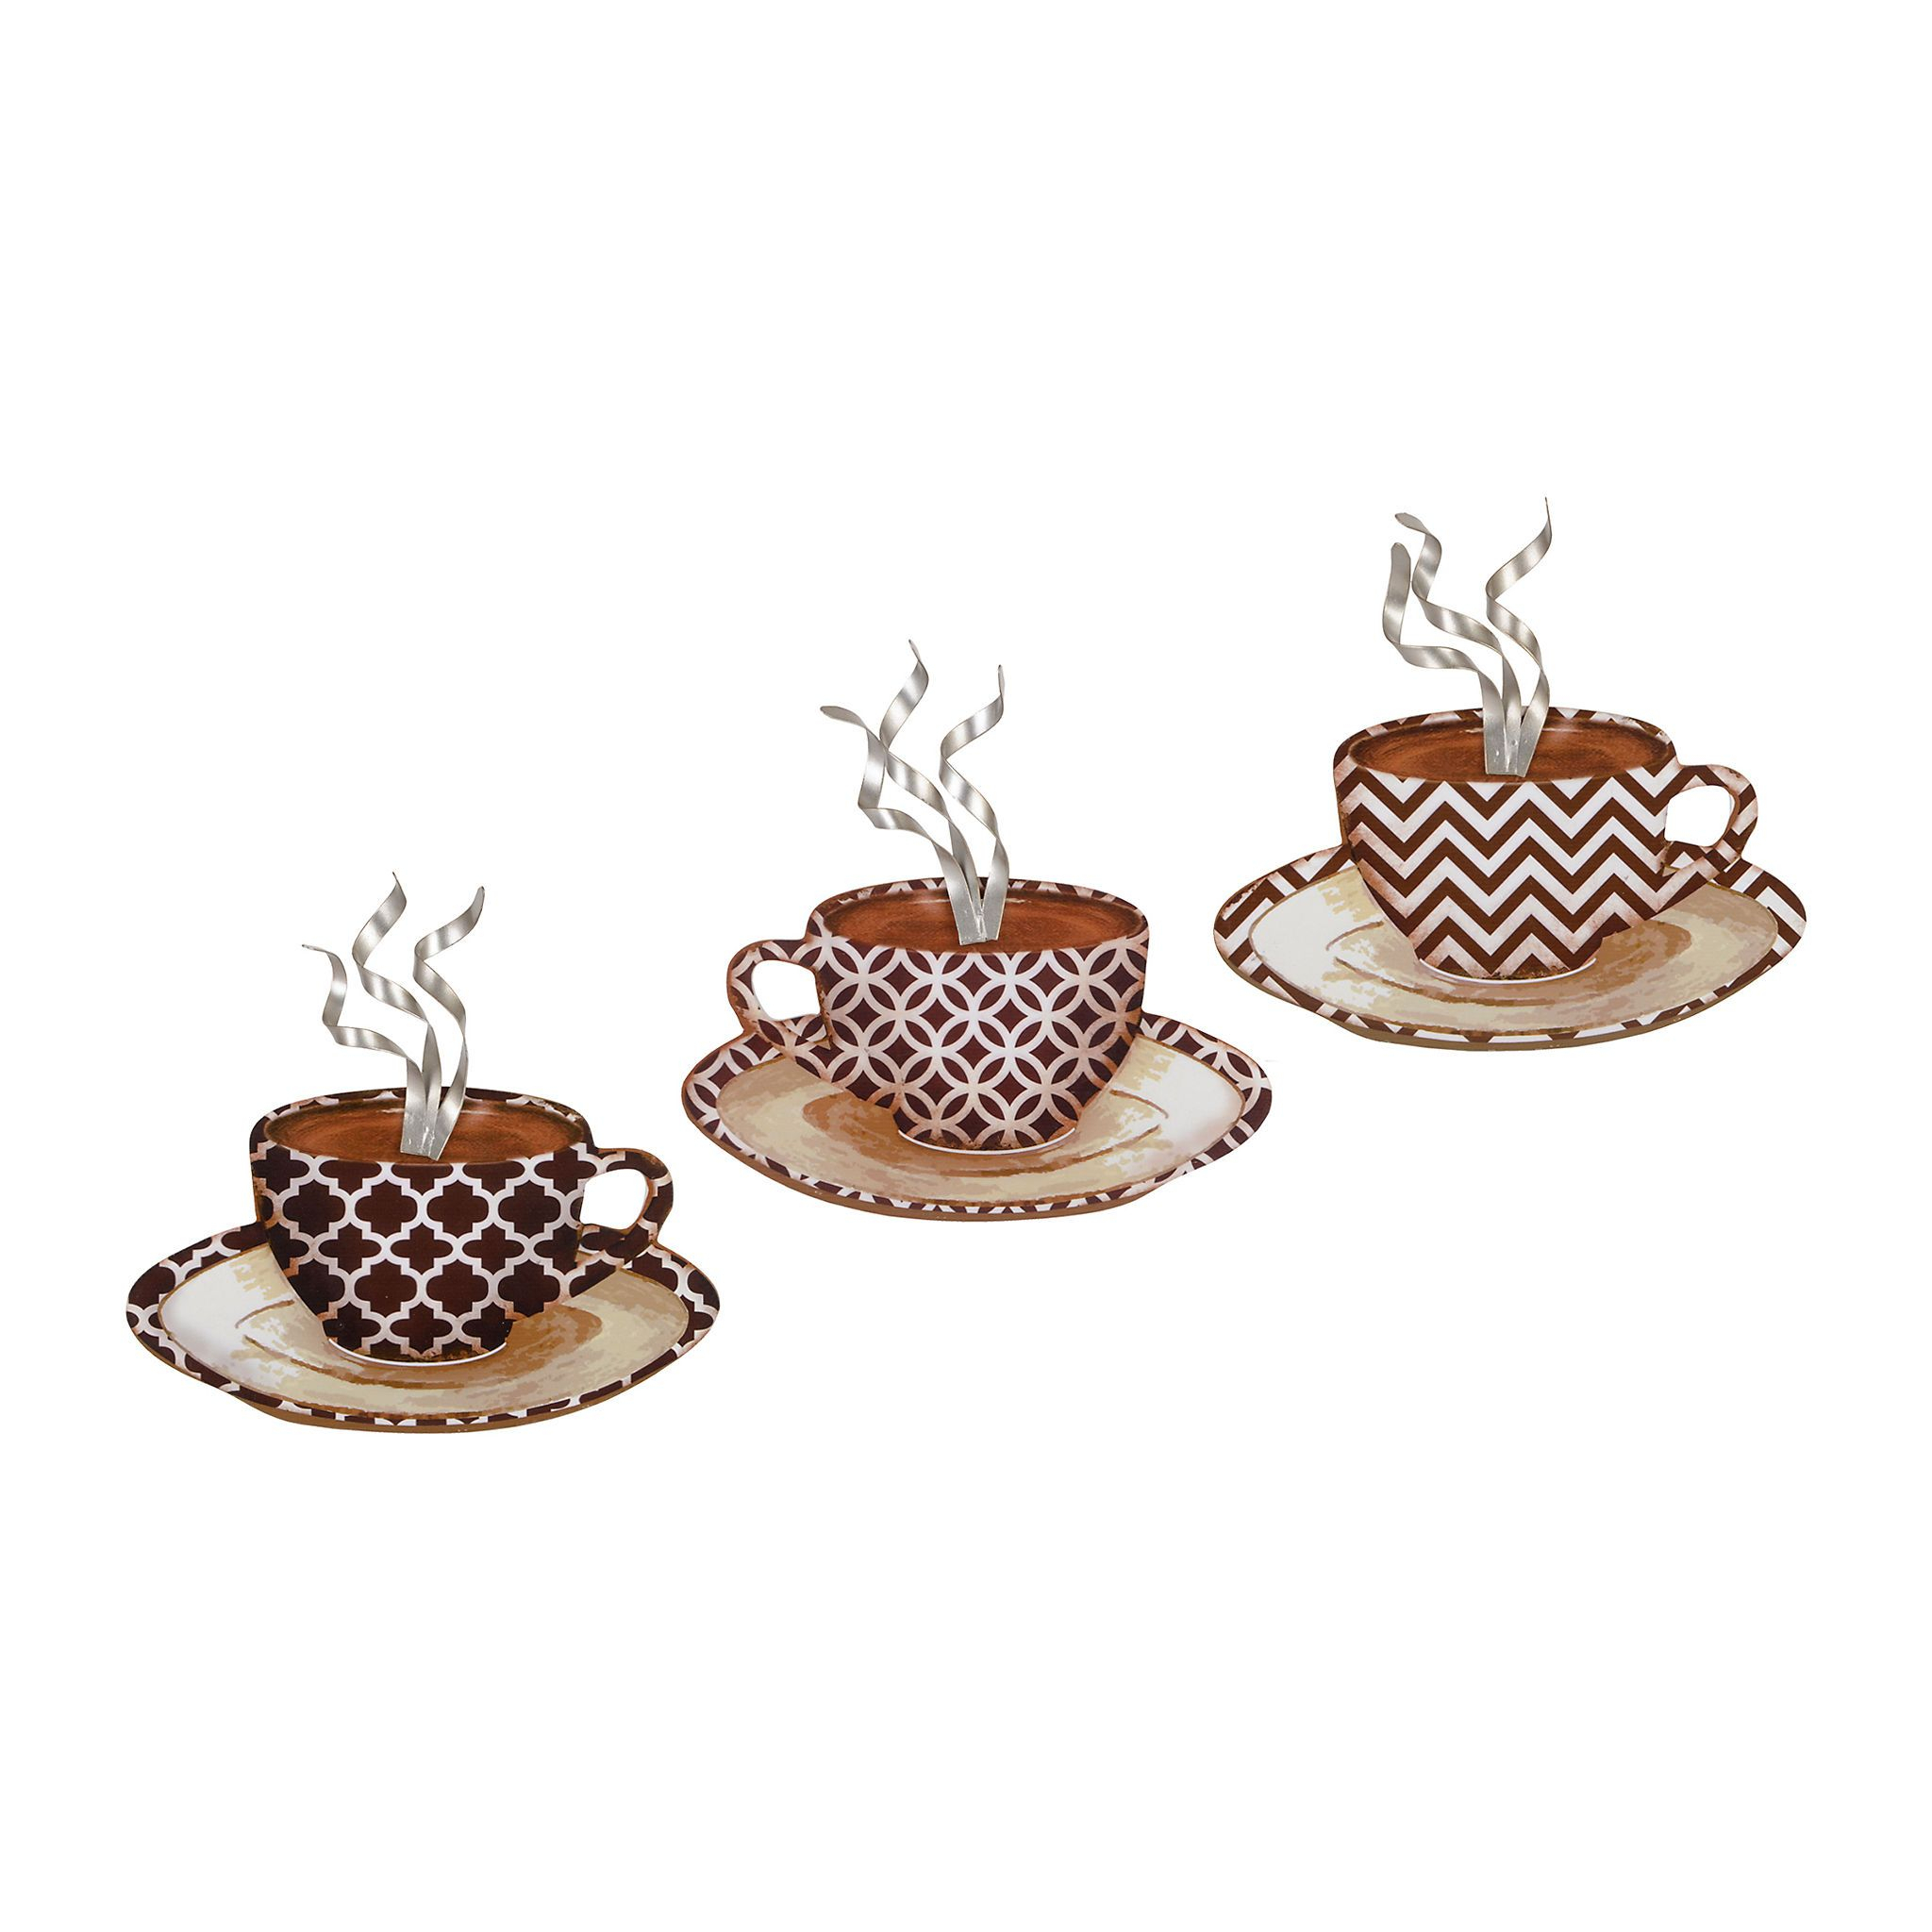 Decorative Three Stacked Coffee Tea Cups Iron Widget Wall Decor within 2020 Product Details Patterned Coffee Mug Metal Plaques, Set Of 3